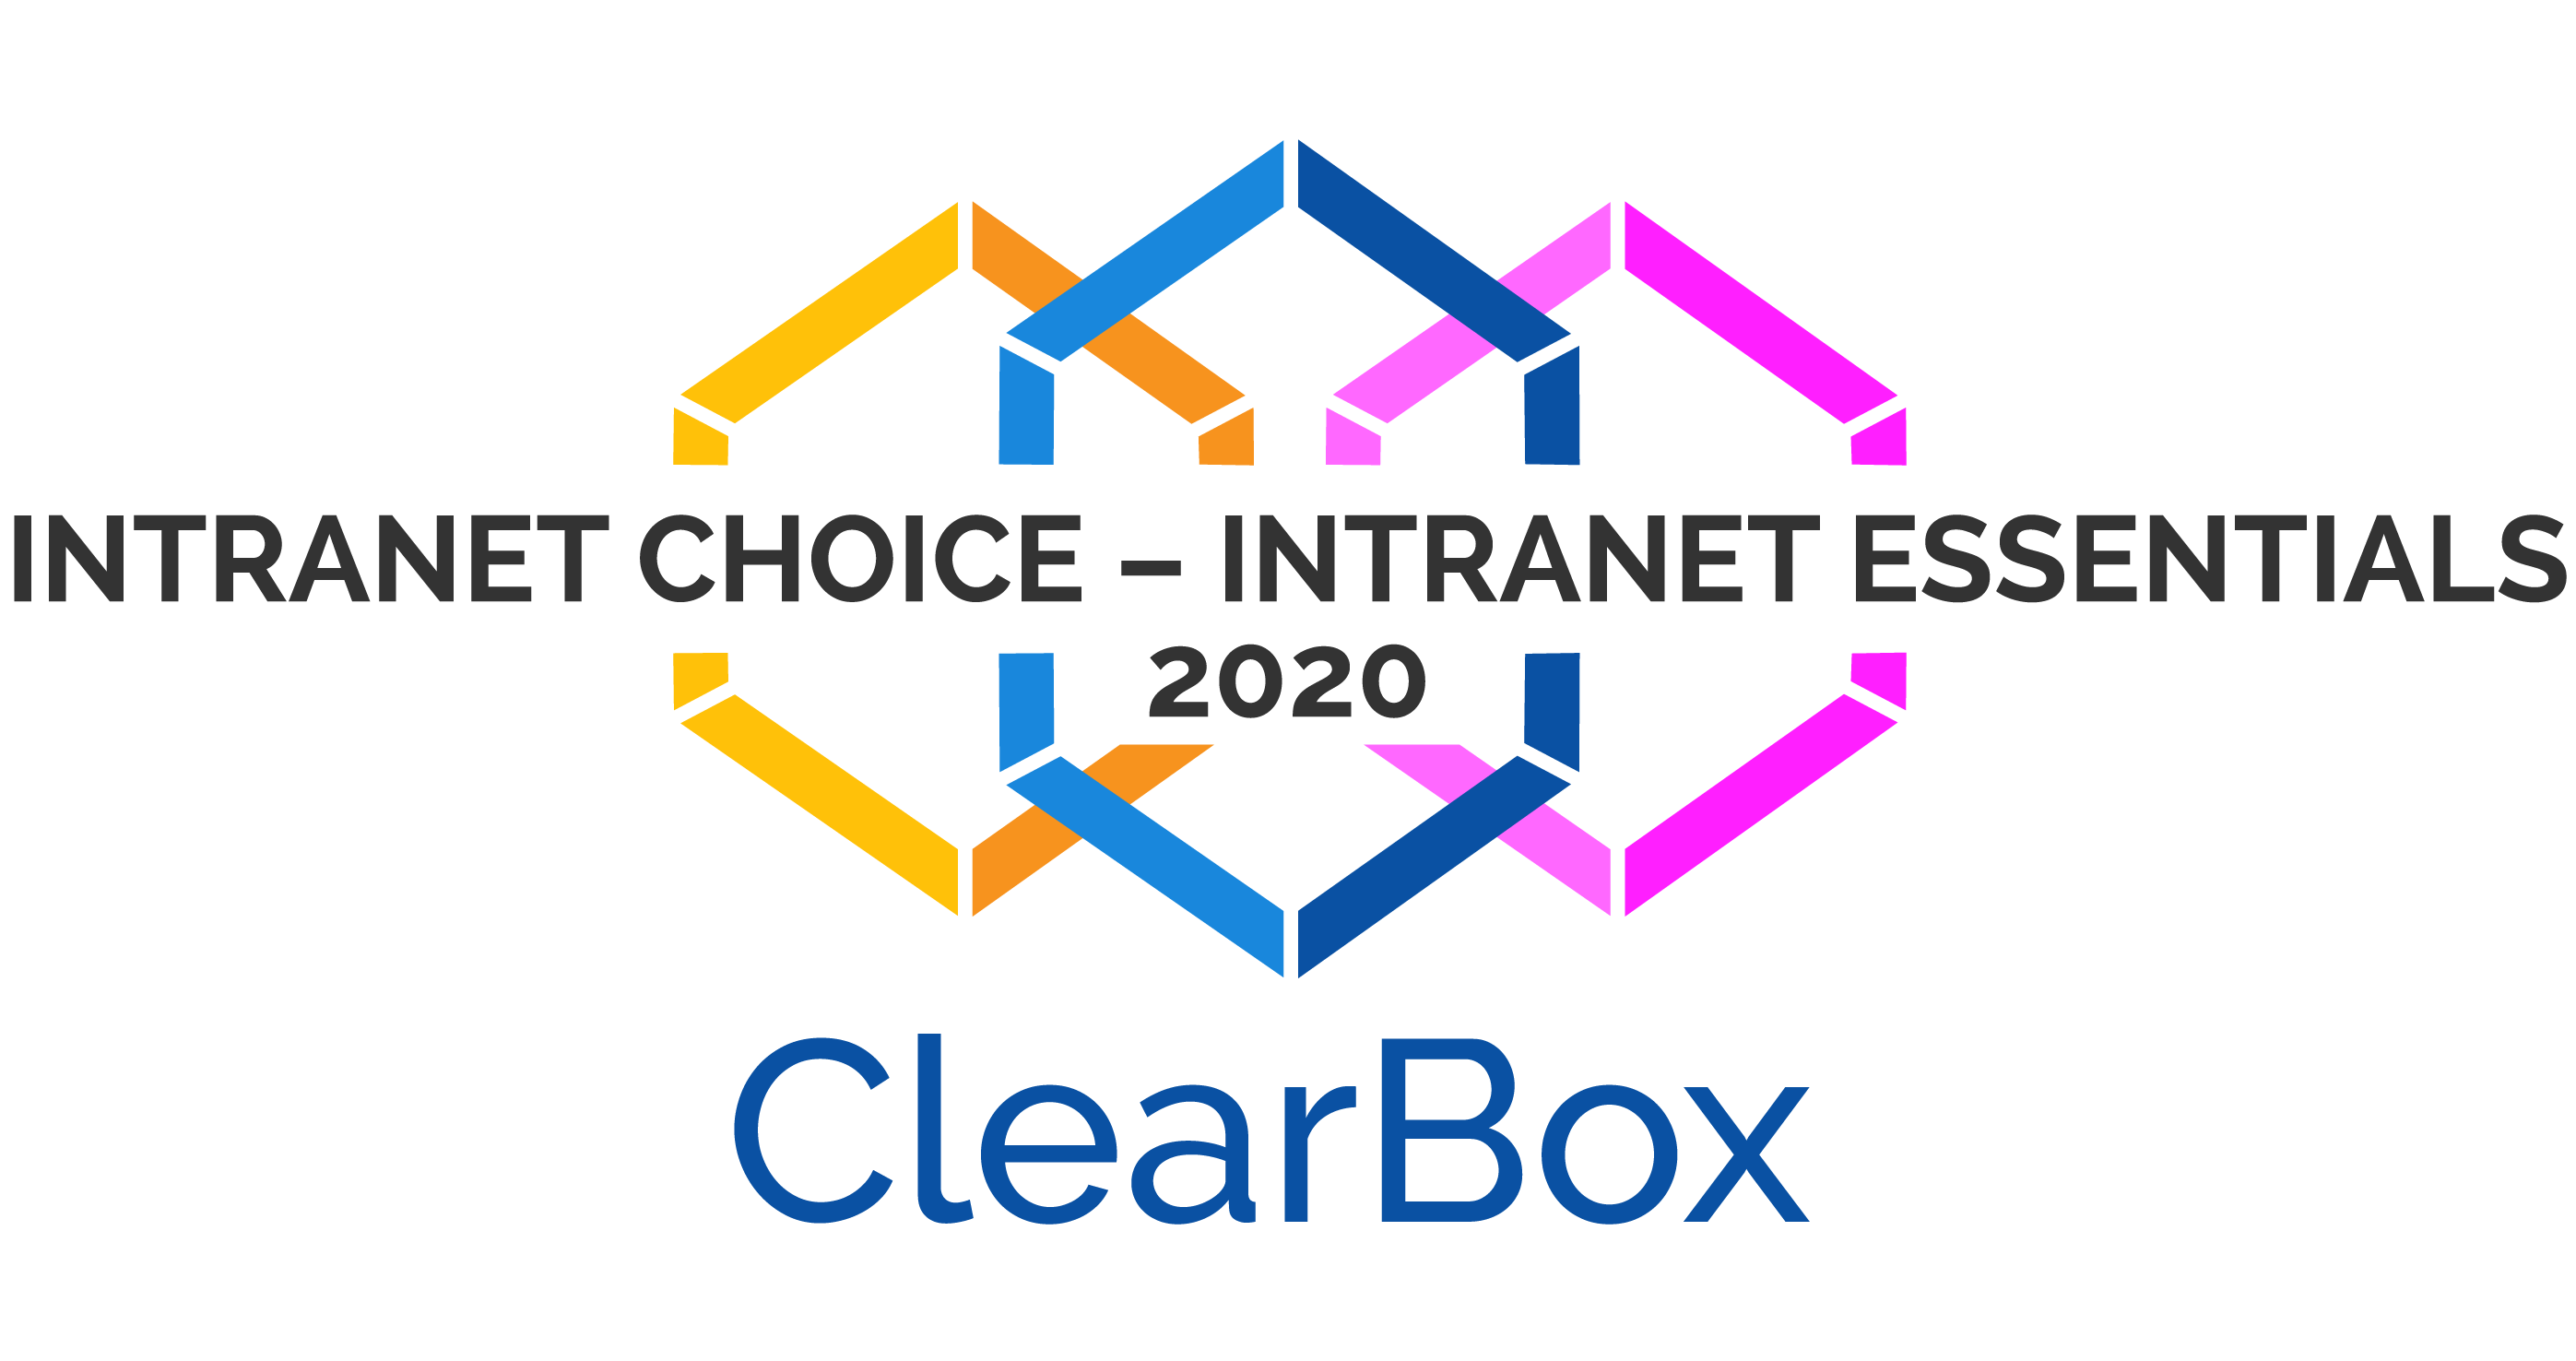 ClearBox Intranet Choice 2020 - Intranet Essentials.